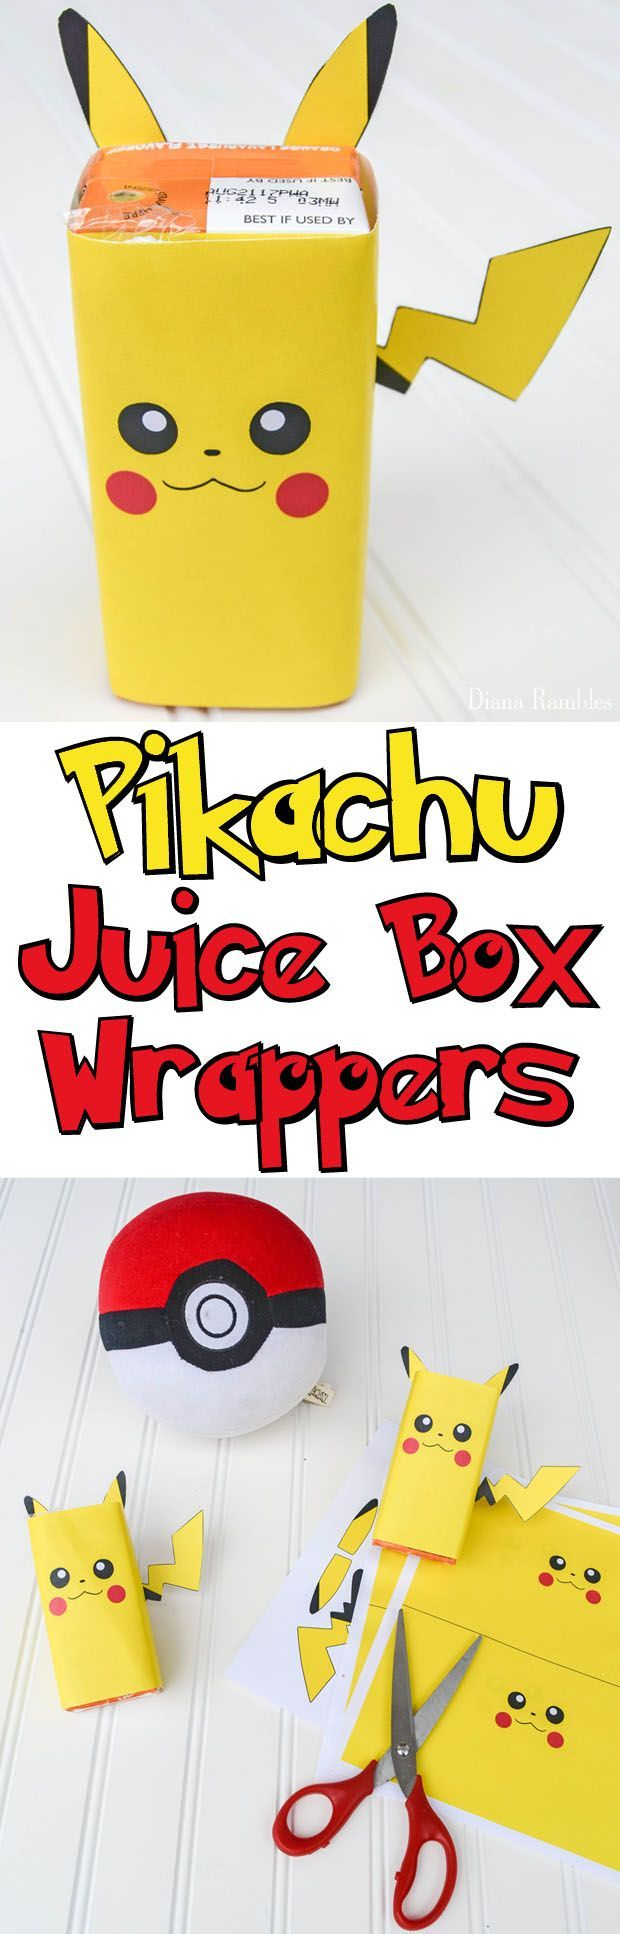 Download these free Pikachu Juice Box Wrappers for the Pokémon lover in your house. These Pokemon covers for juice boxes are perfect for lunch boxes or parties.